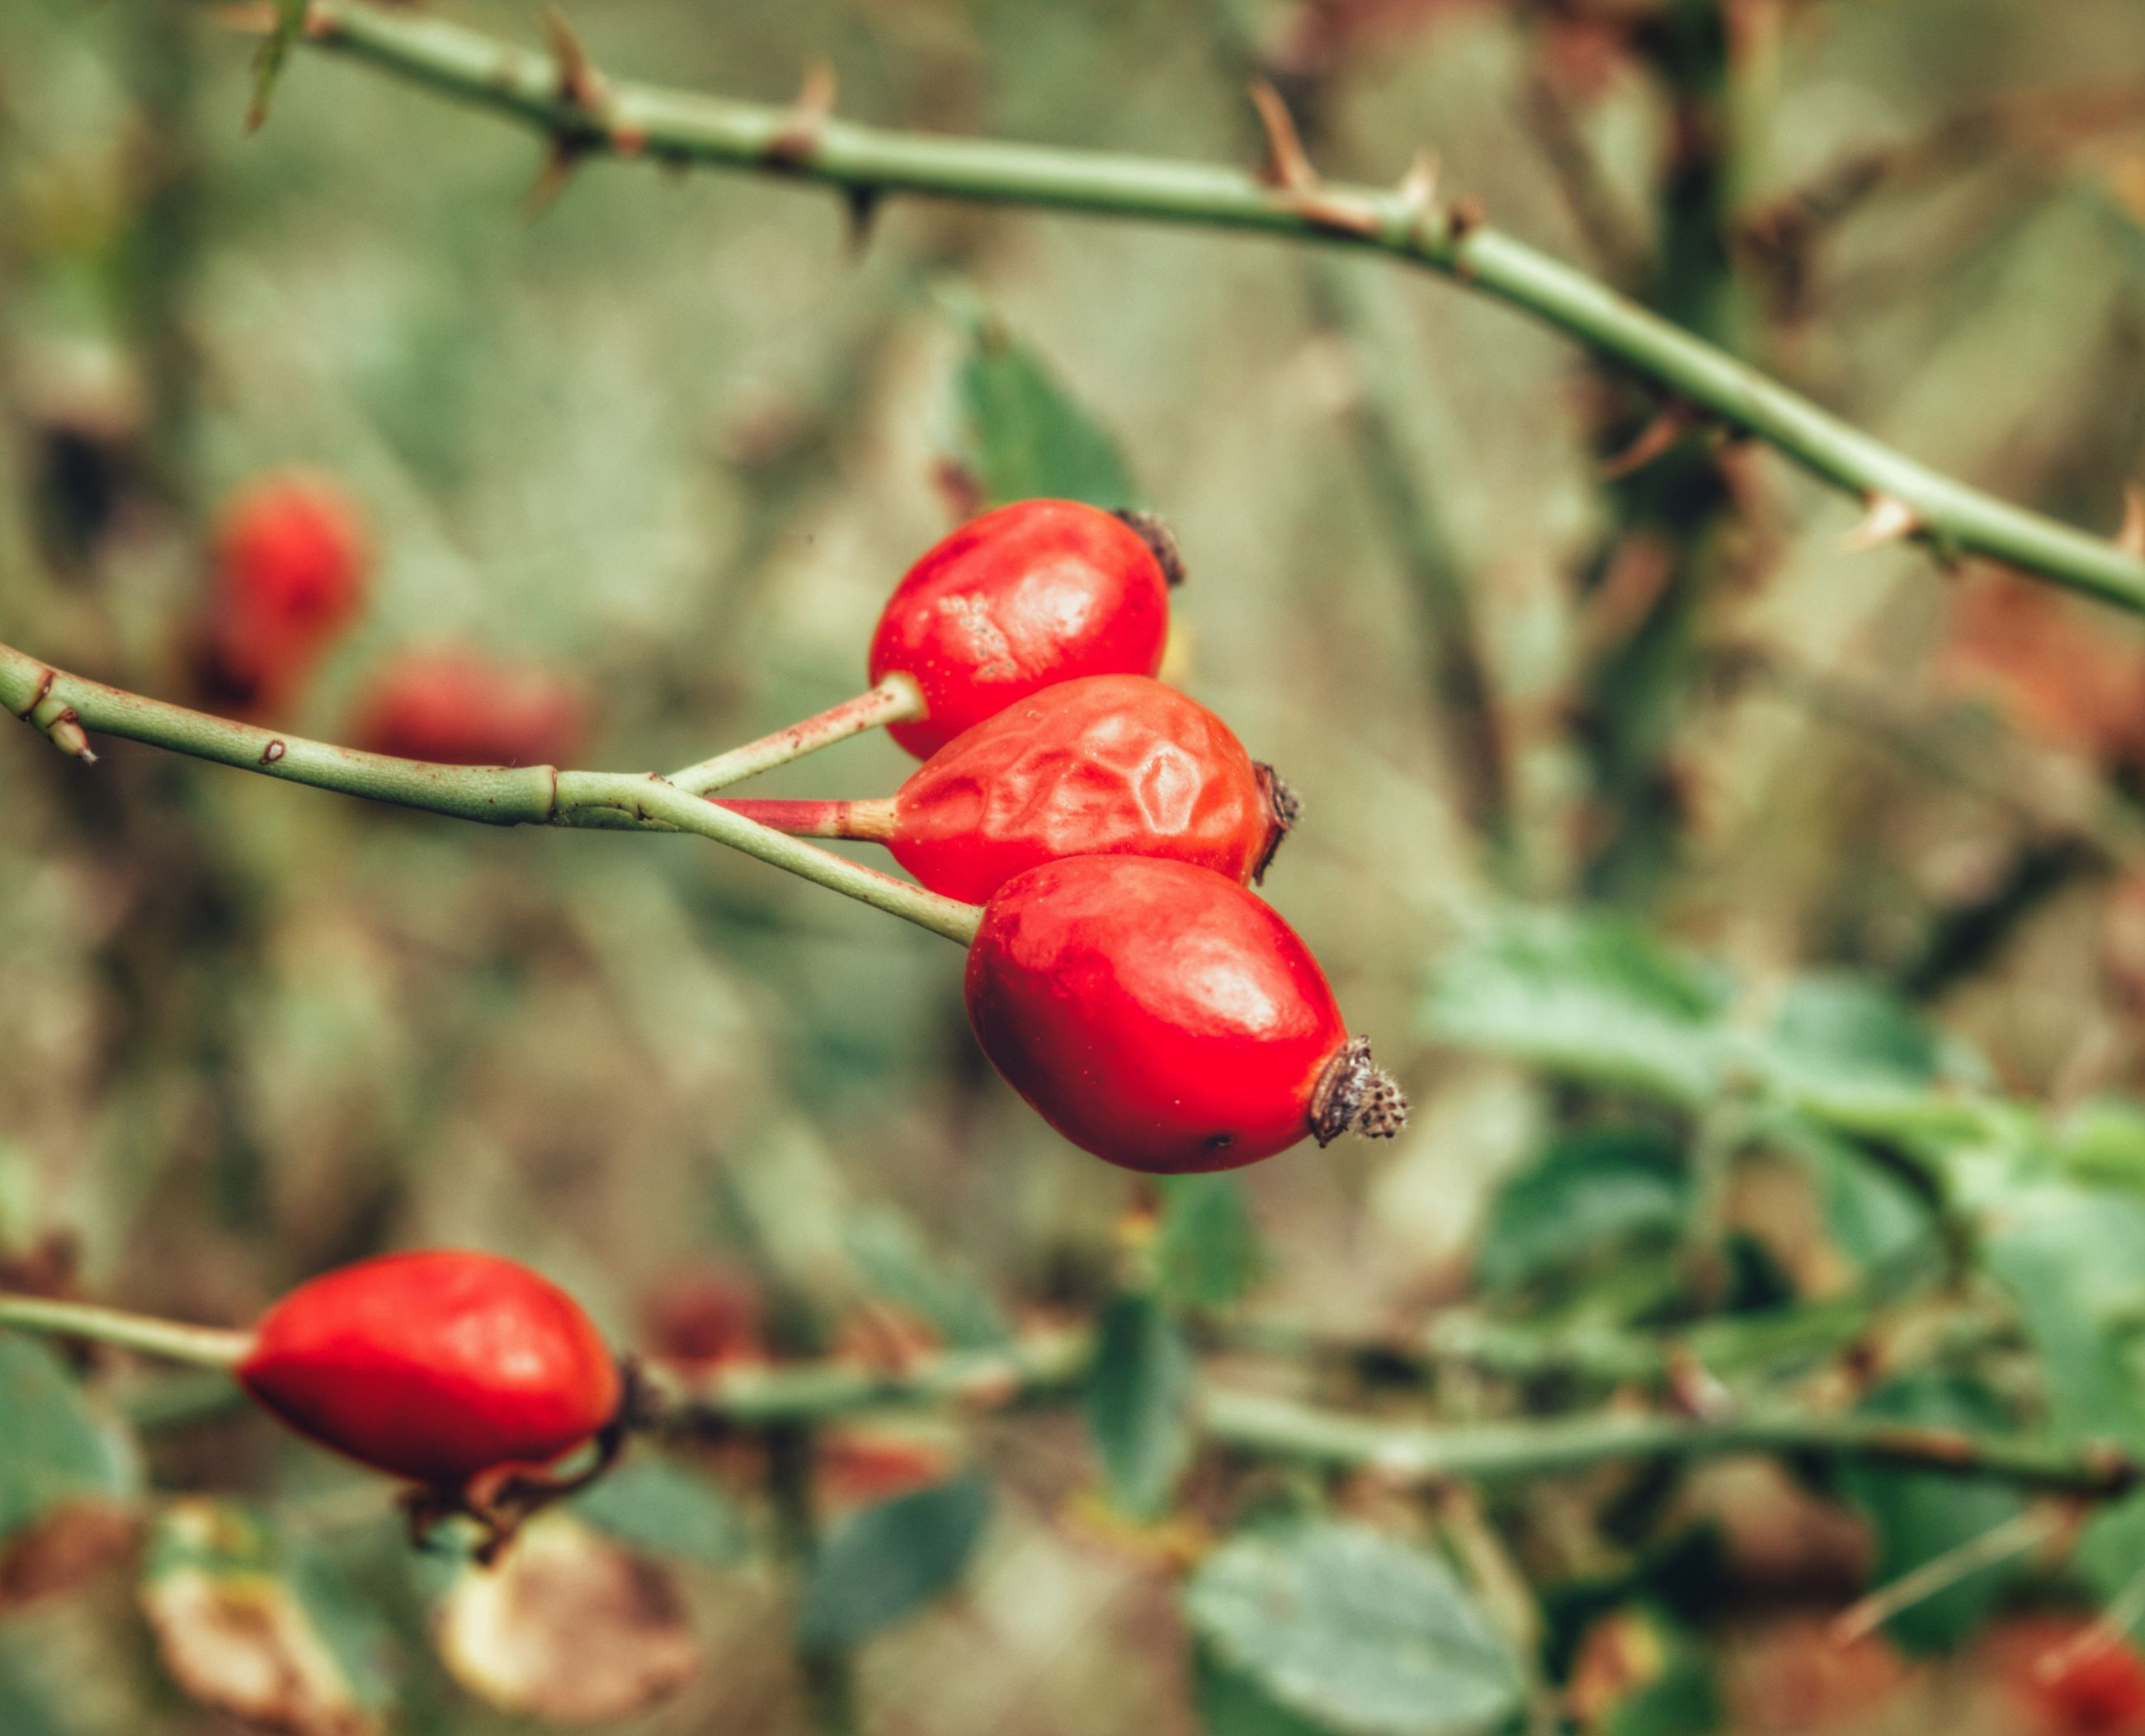 red, close-up, fruit, food and drink, focus on foreground, nature, growth, freshness, rose hip, no people, outdoors, food, healthy eating, day, beauty in nature